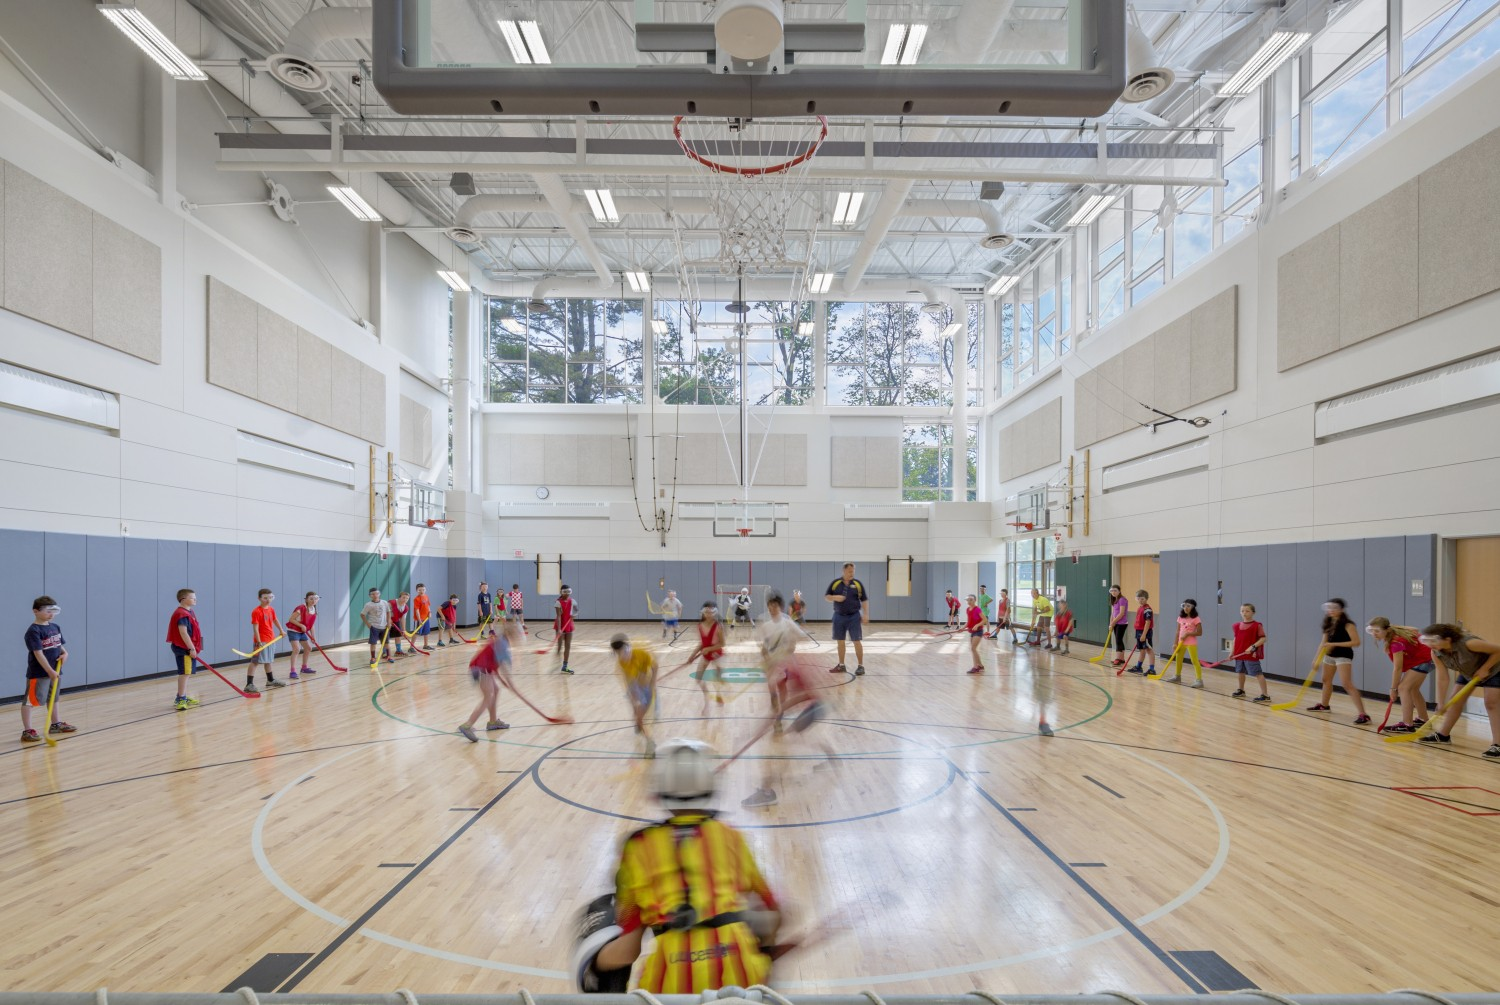 Bancroft Elementary School Gym Design